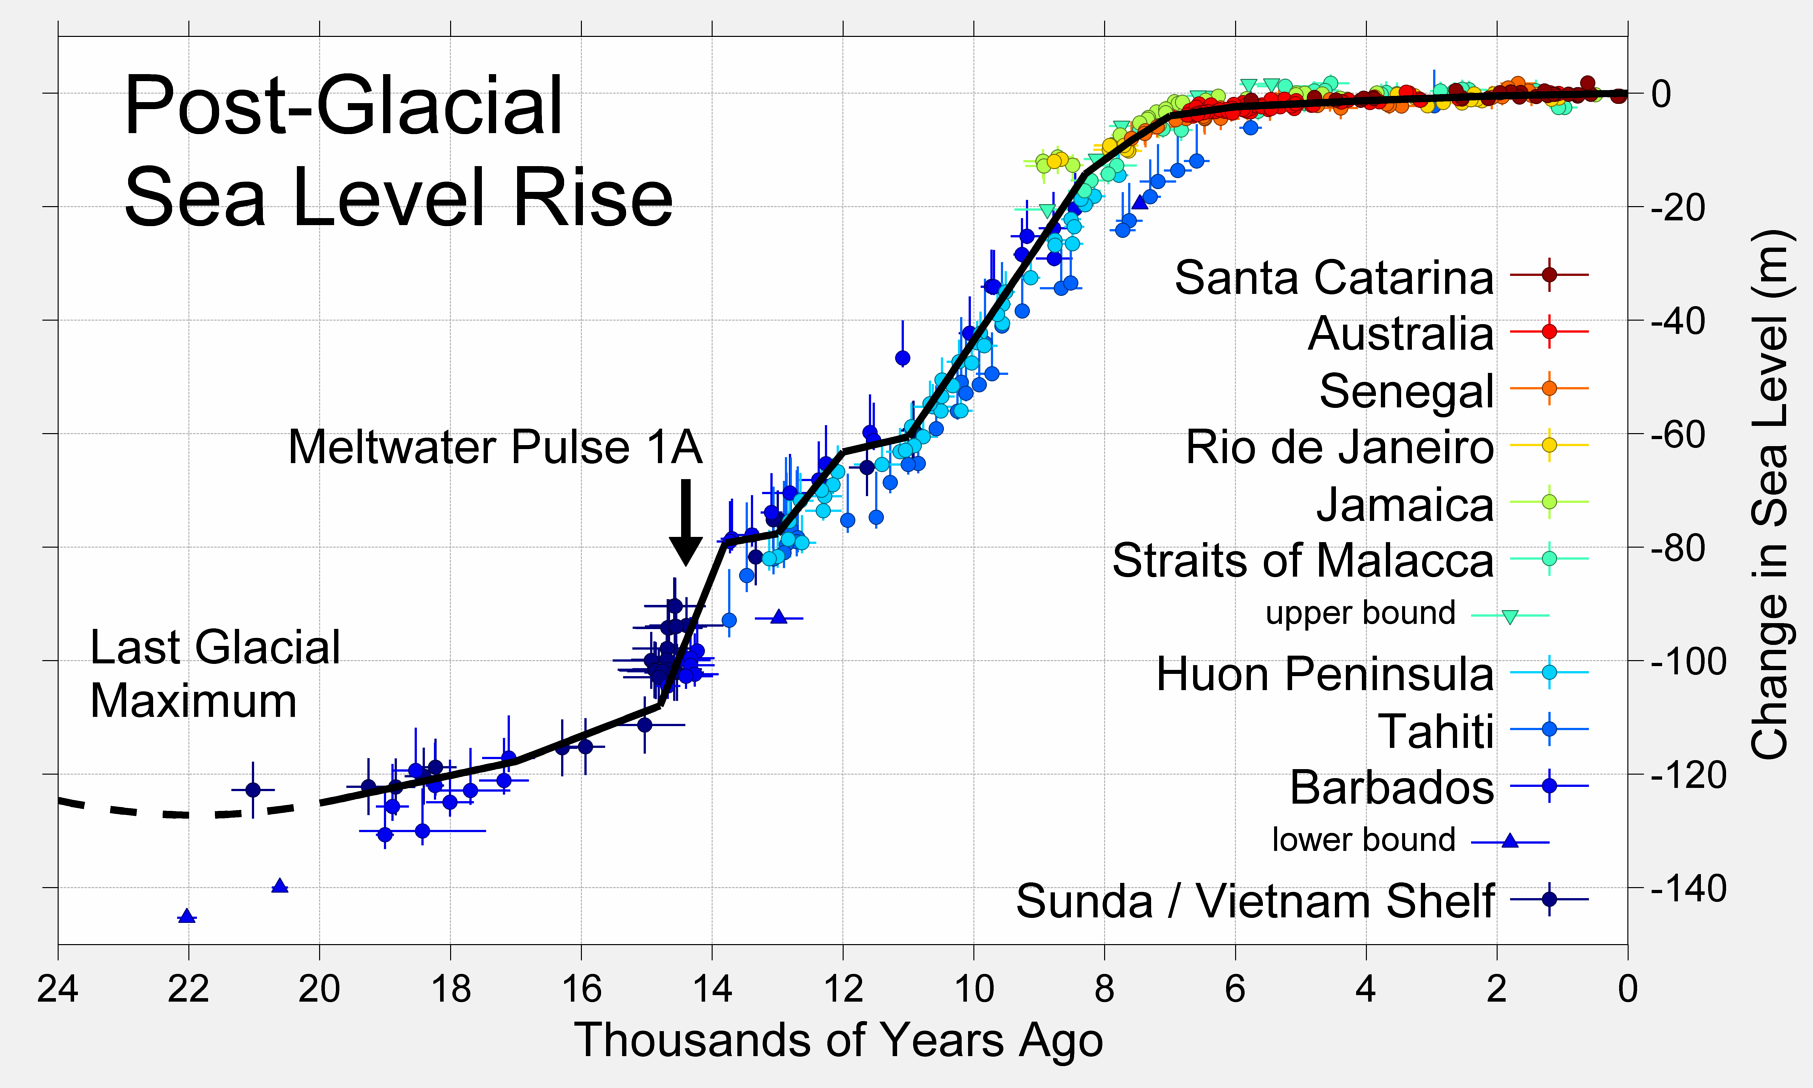 https://upload.wikimedia.org/wikipedia/commons/1/1d/Post-Glacial_Sea_Level.png